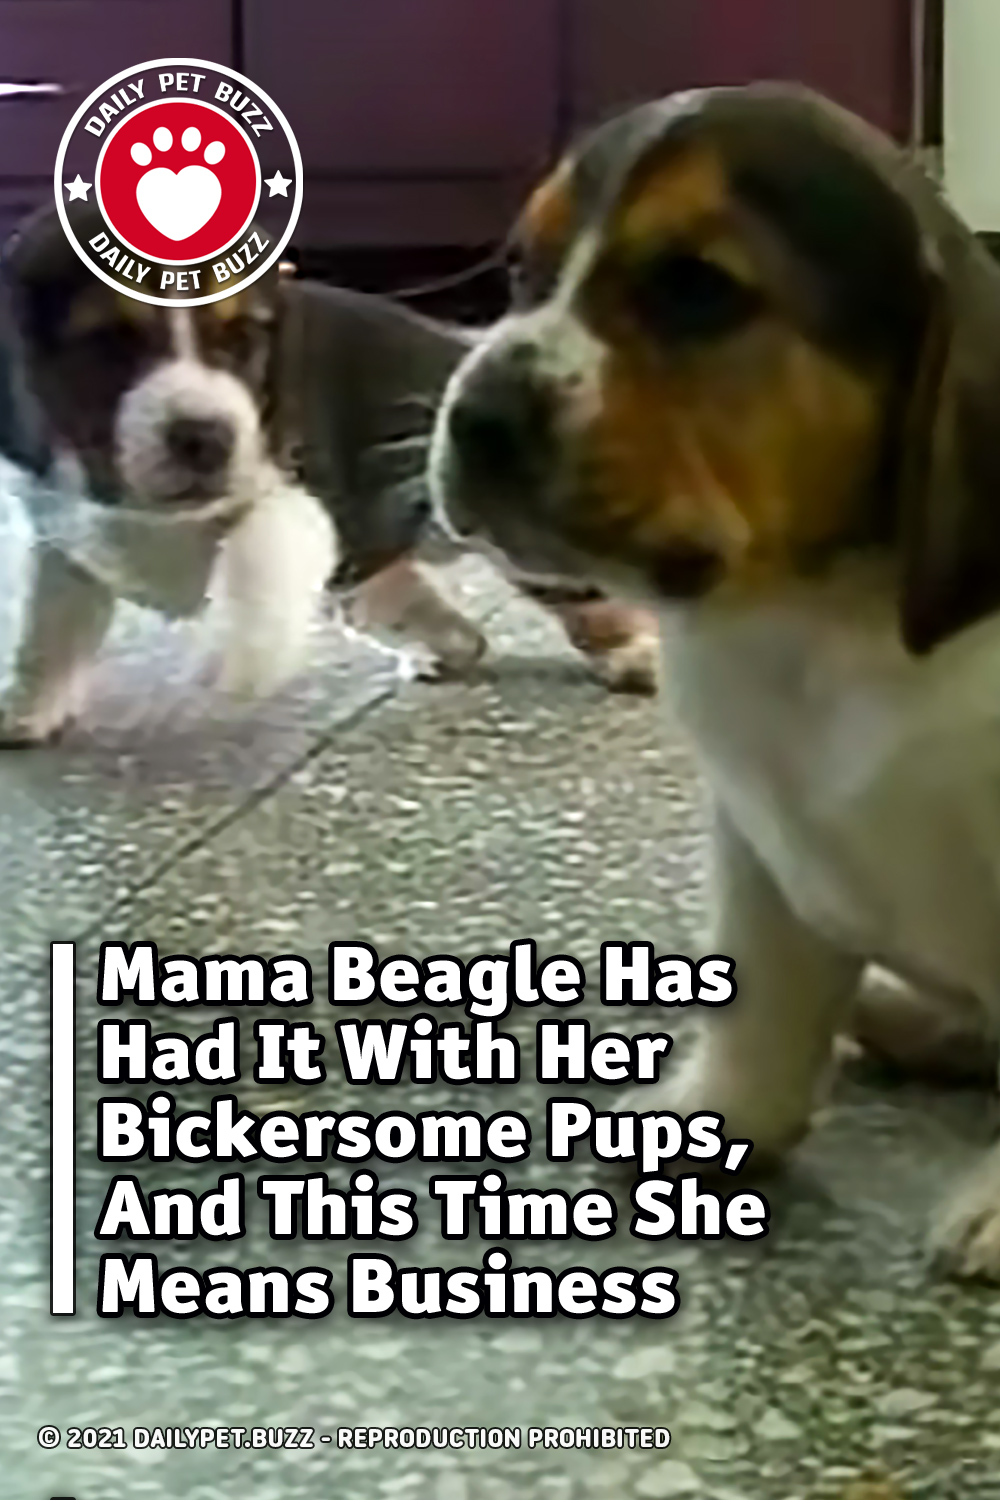 Mama Beagle Has Had It With Her Bickersome Pups, And This Time She Means Business